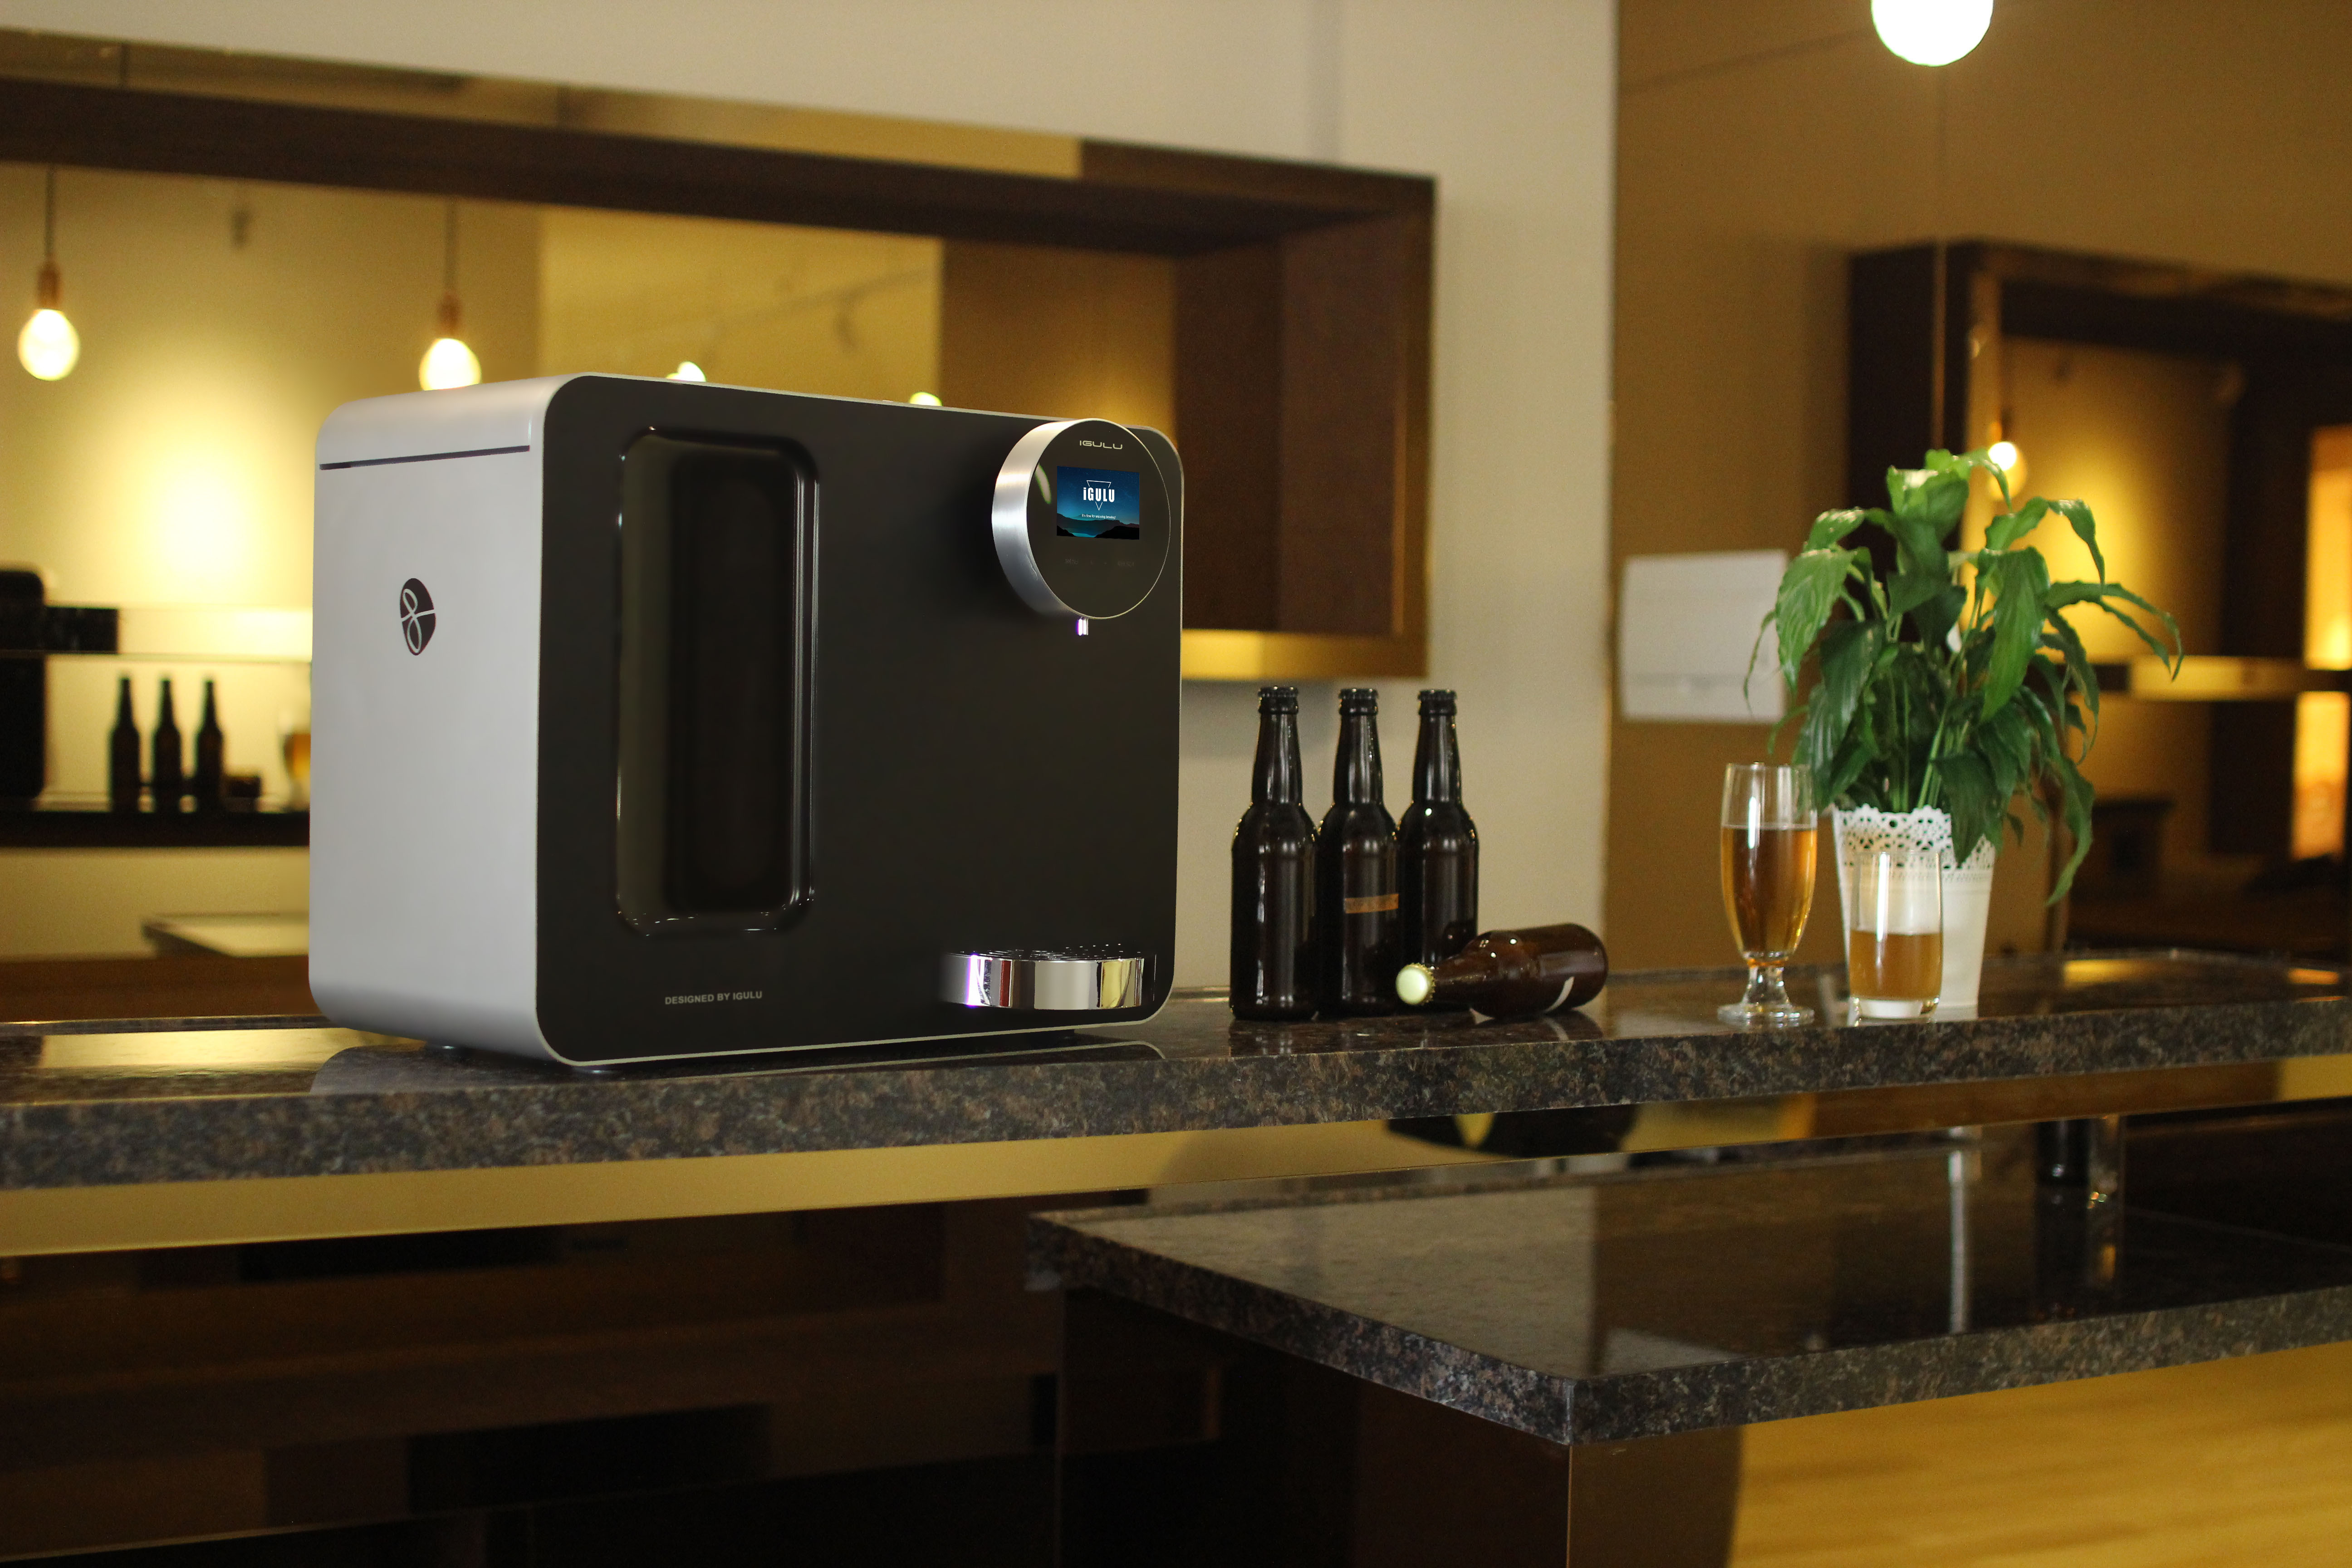 igulu introduces home brewery system with launch of indiegogo indemand campaign business wire - Home Brewery Design